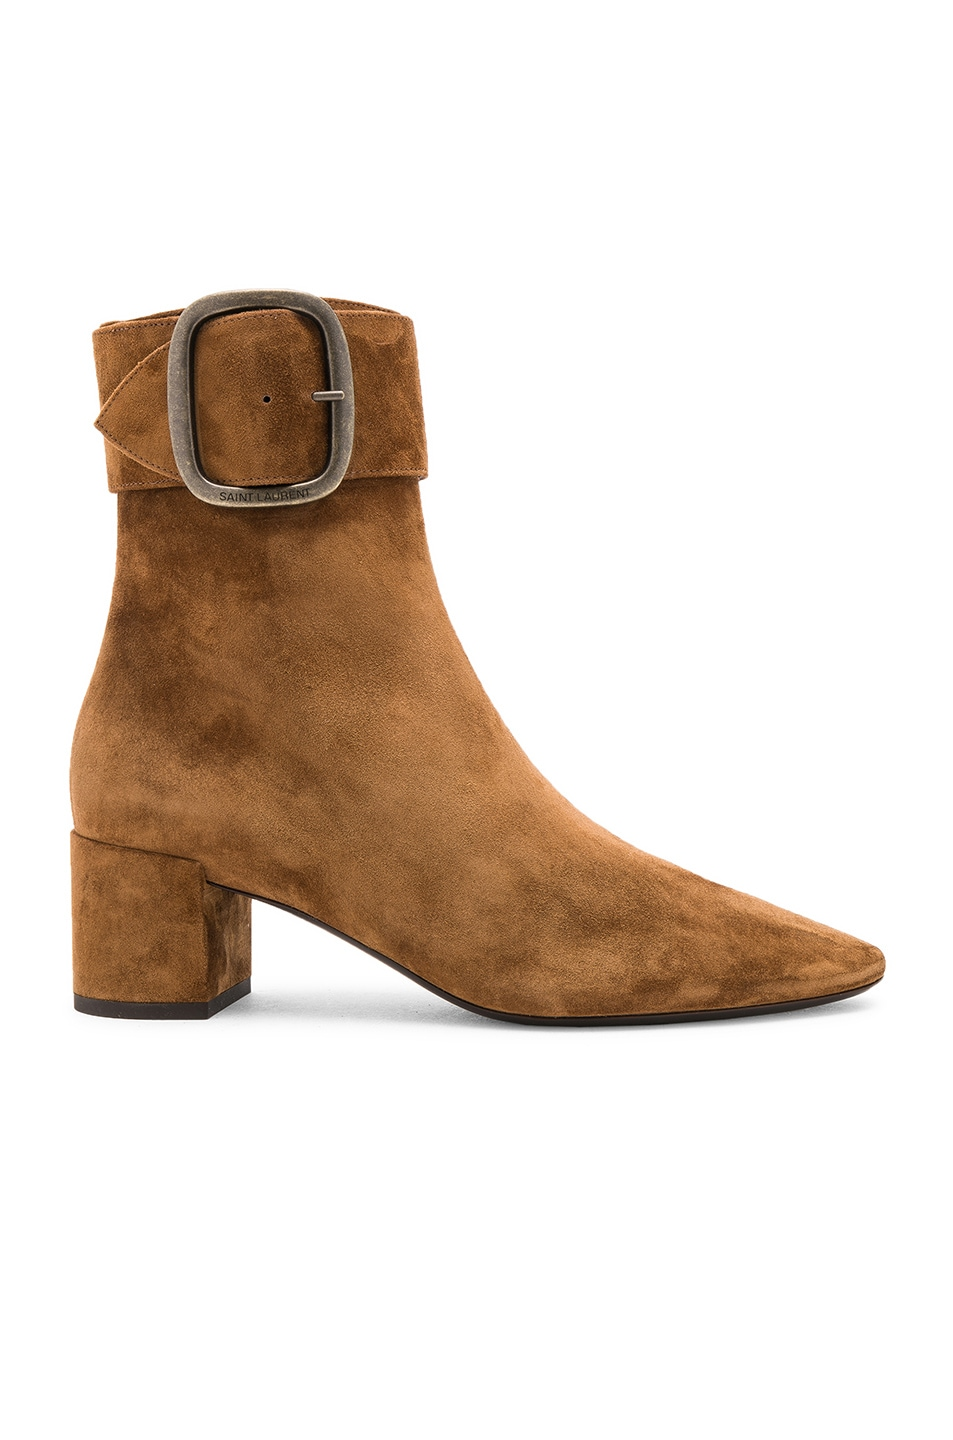 Image 1 of Saint Laurent Suede Joplin Buckle Ankle Boots in Caramel